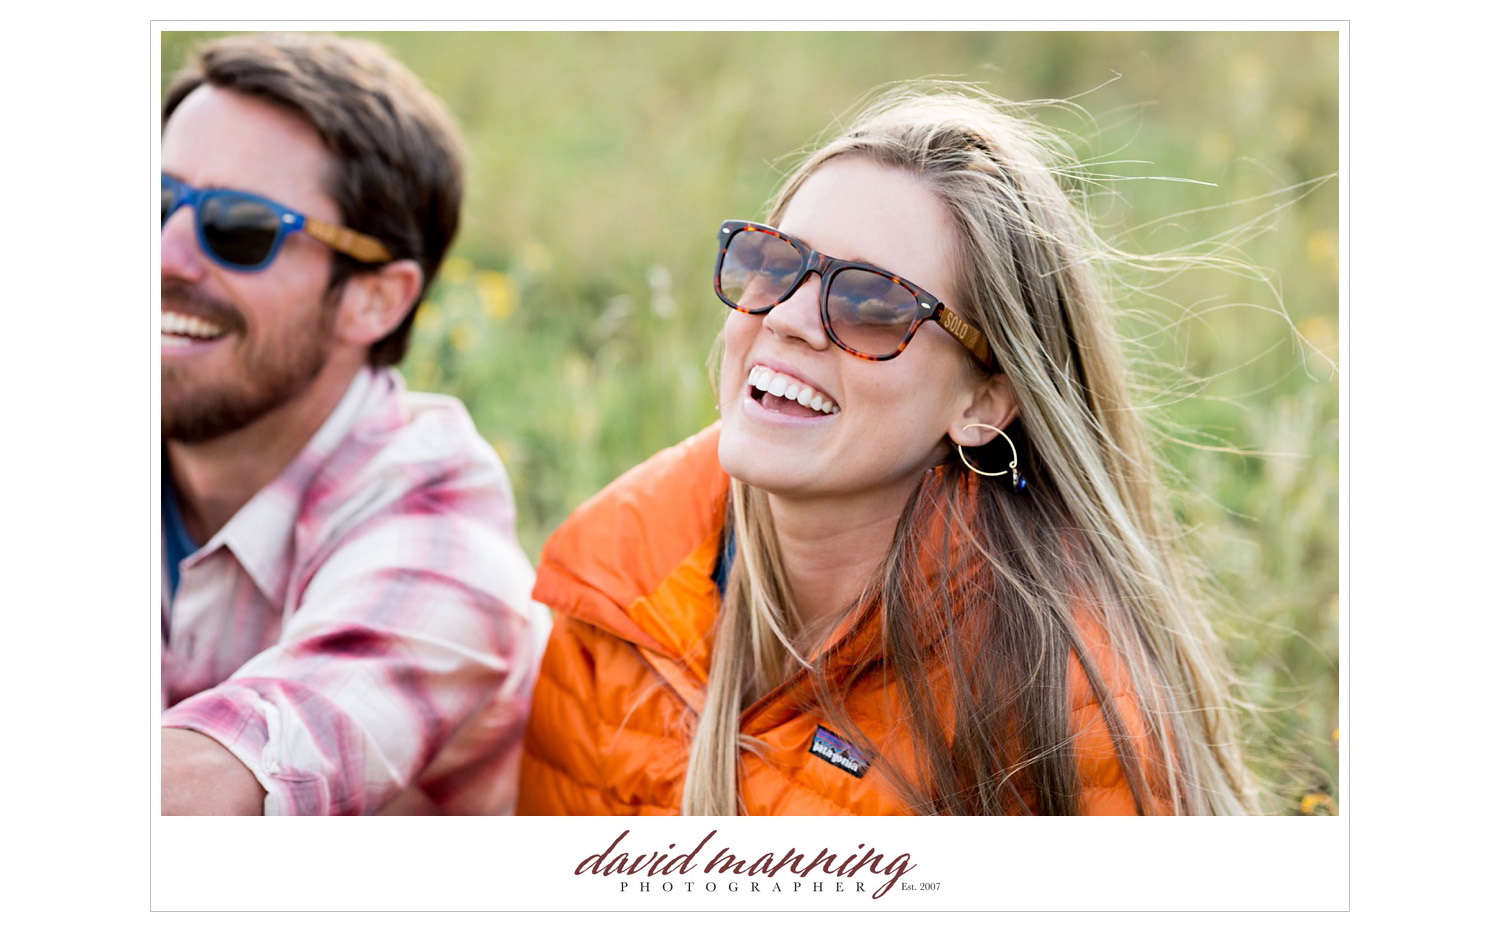 SOLO-Eyewear--Commercial-Editorial-Photos-David-Manning-Photographers-0041.jpg